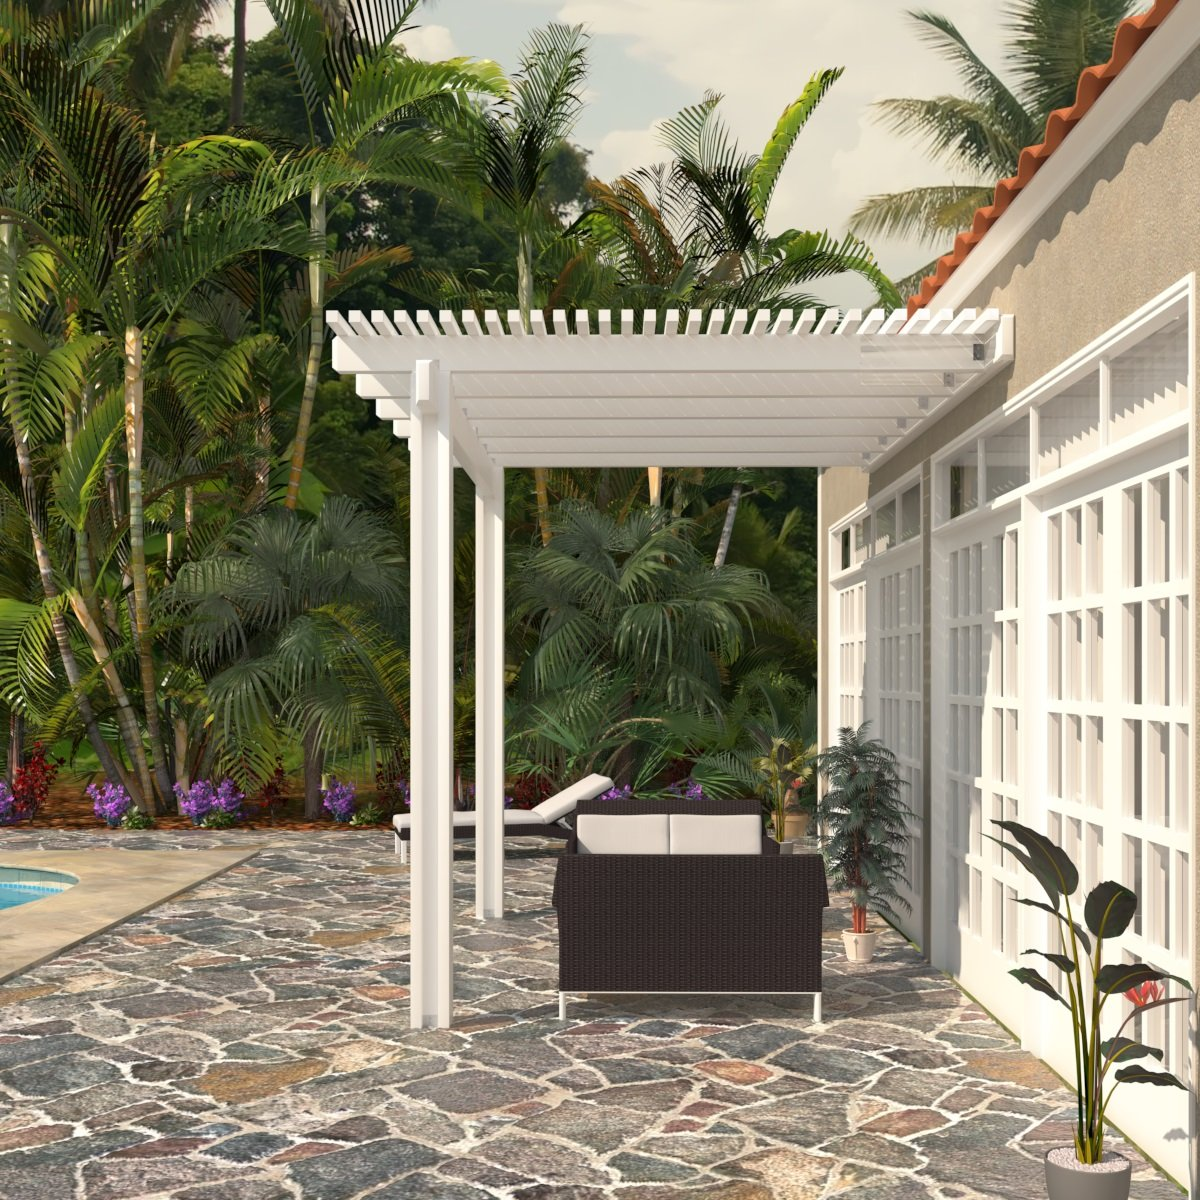 Heritage Patios Aluminum Pergola - 8 ft. x 12 ft. (White) by Heritage Patios